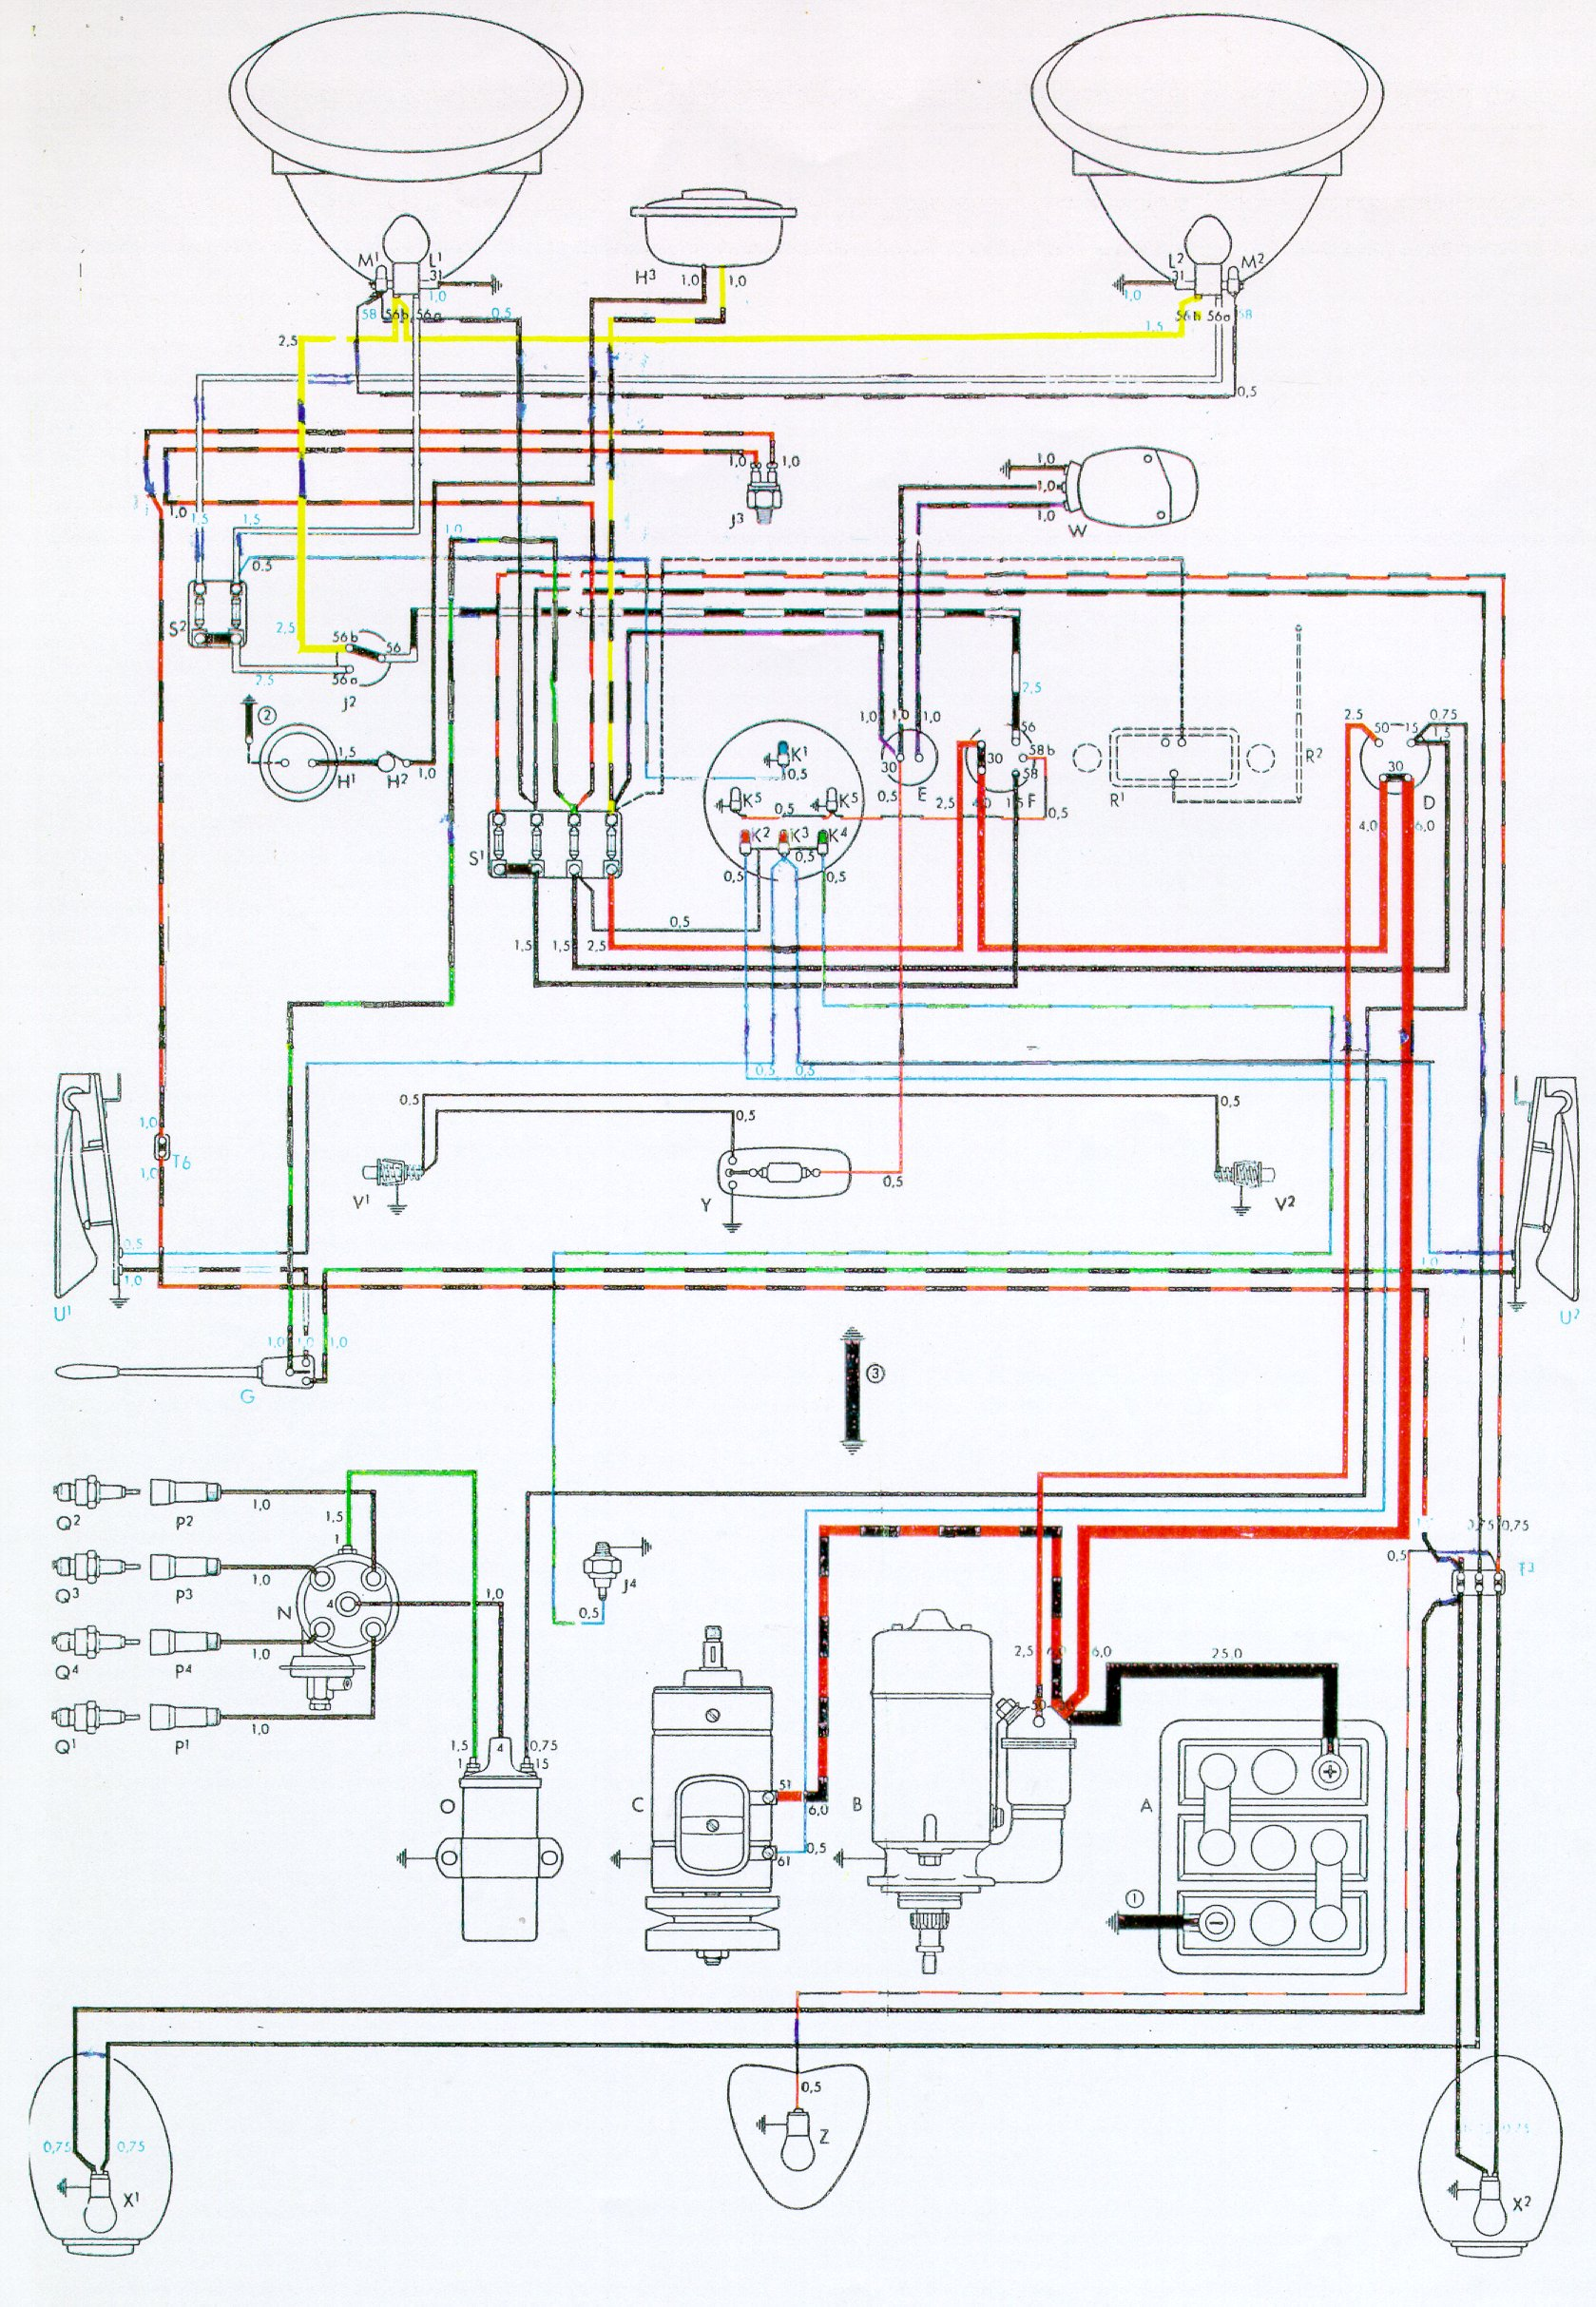 hight resolution of vintagebus com vw bus and other wiring diagrams wiring diagram for air cooled vw